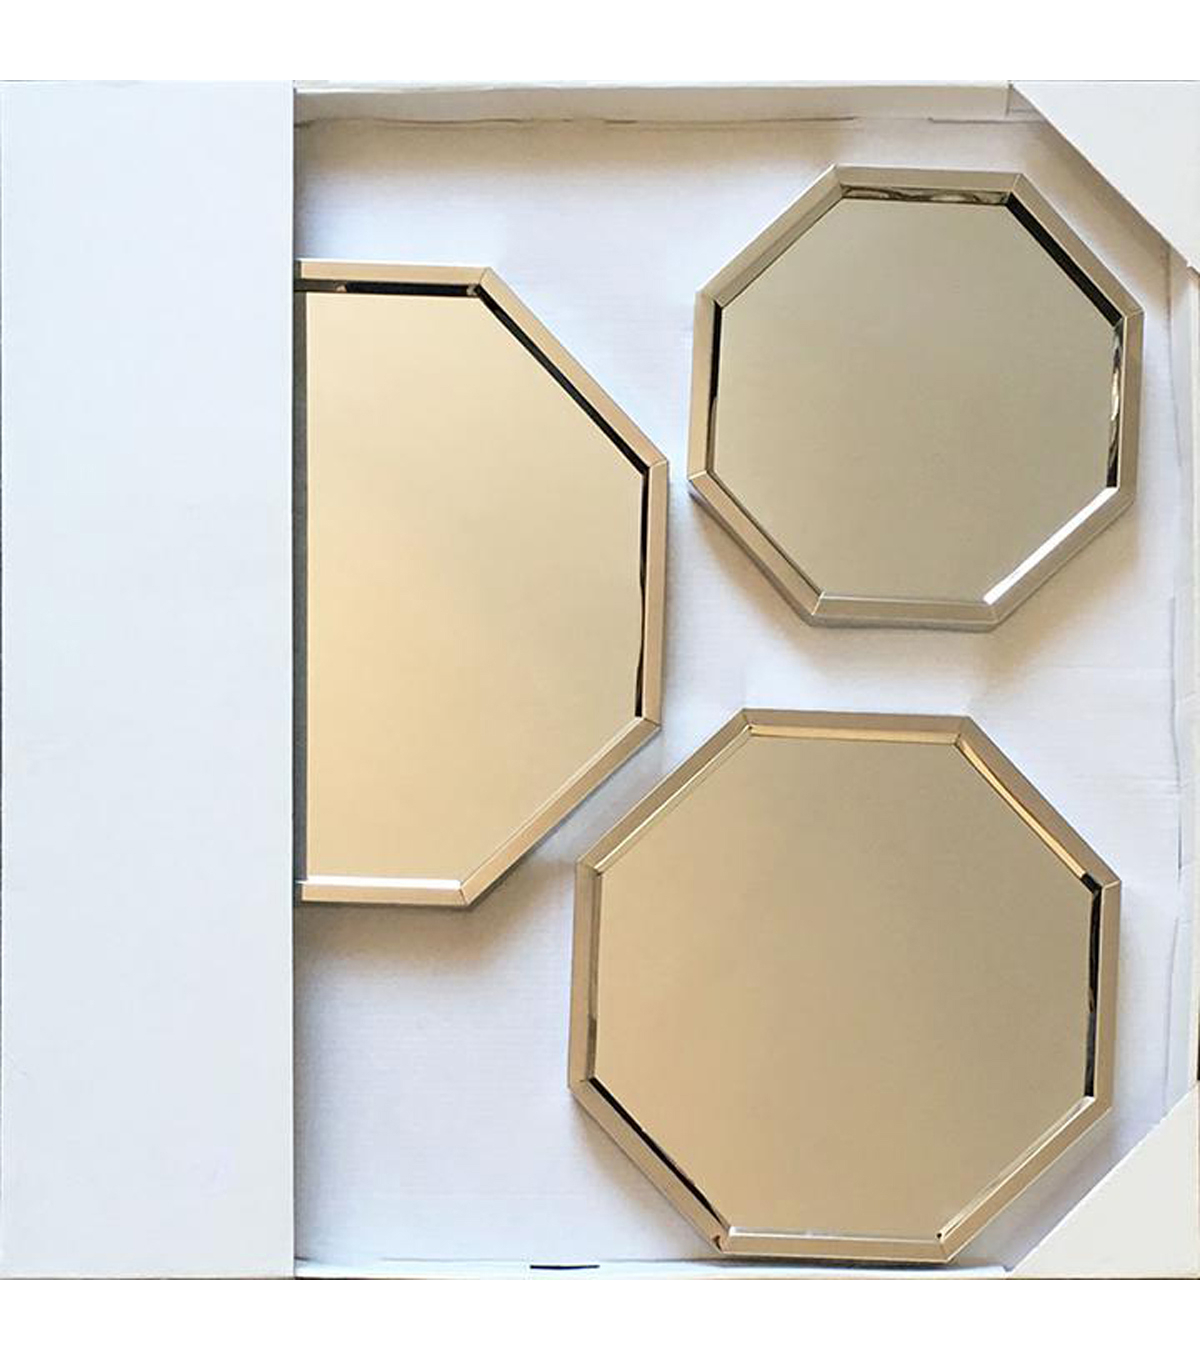 Octagon Wall Mirrors Throughout Most Recently Released Octagon Wall Mirrors With Steel Frame 3 Pk (View 7 of 20)